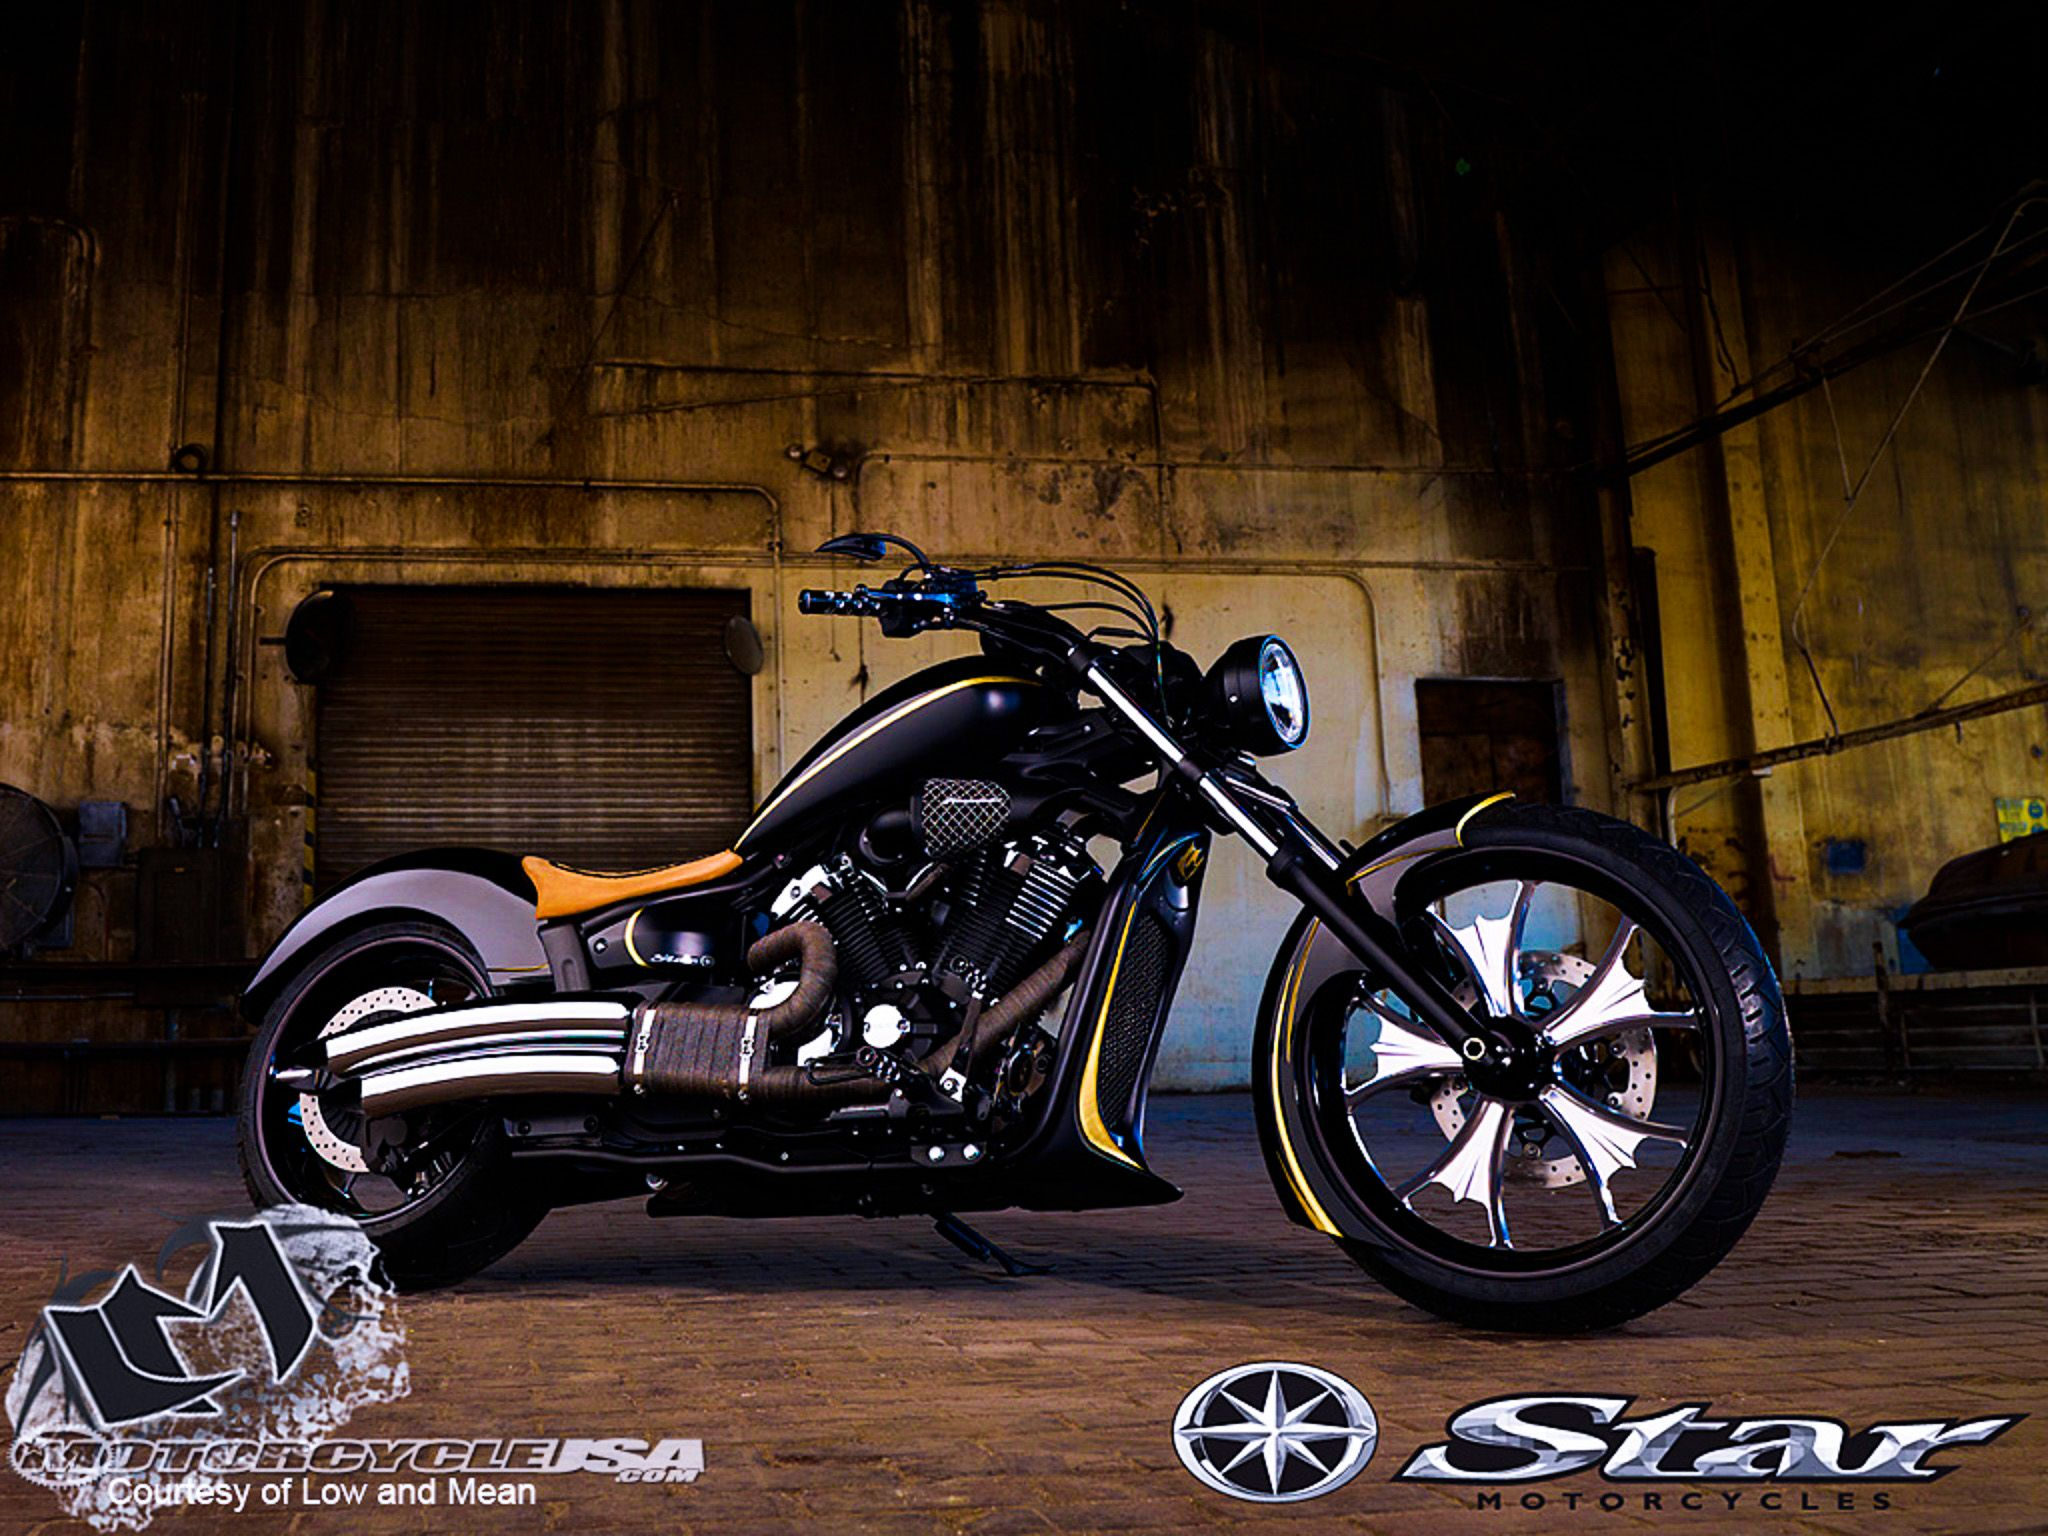 Check out the yamaha star cruiser models for